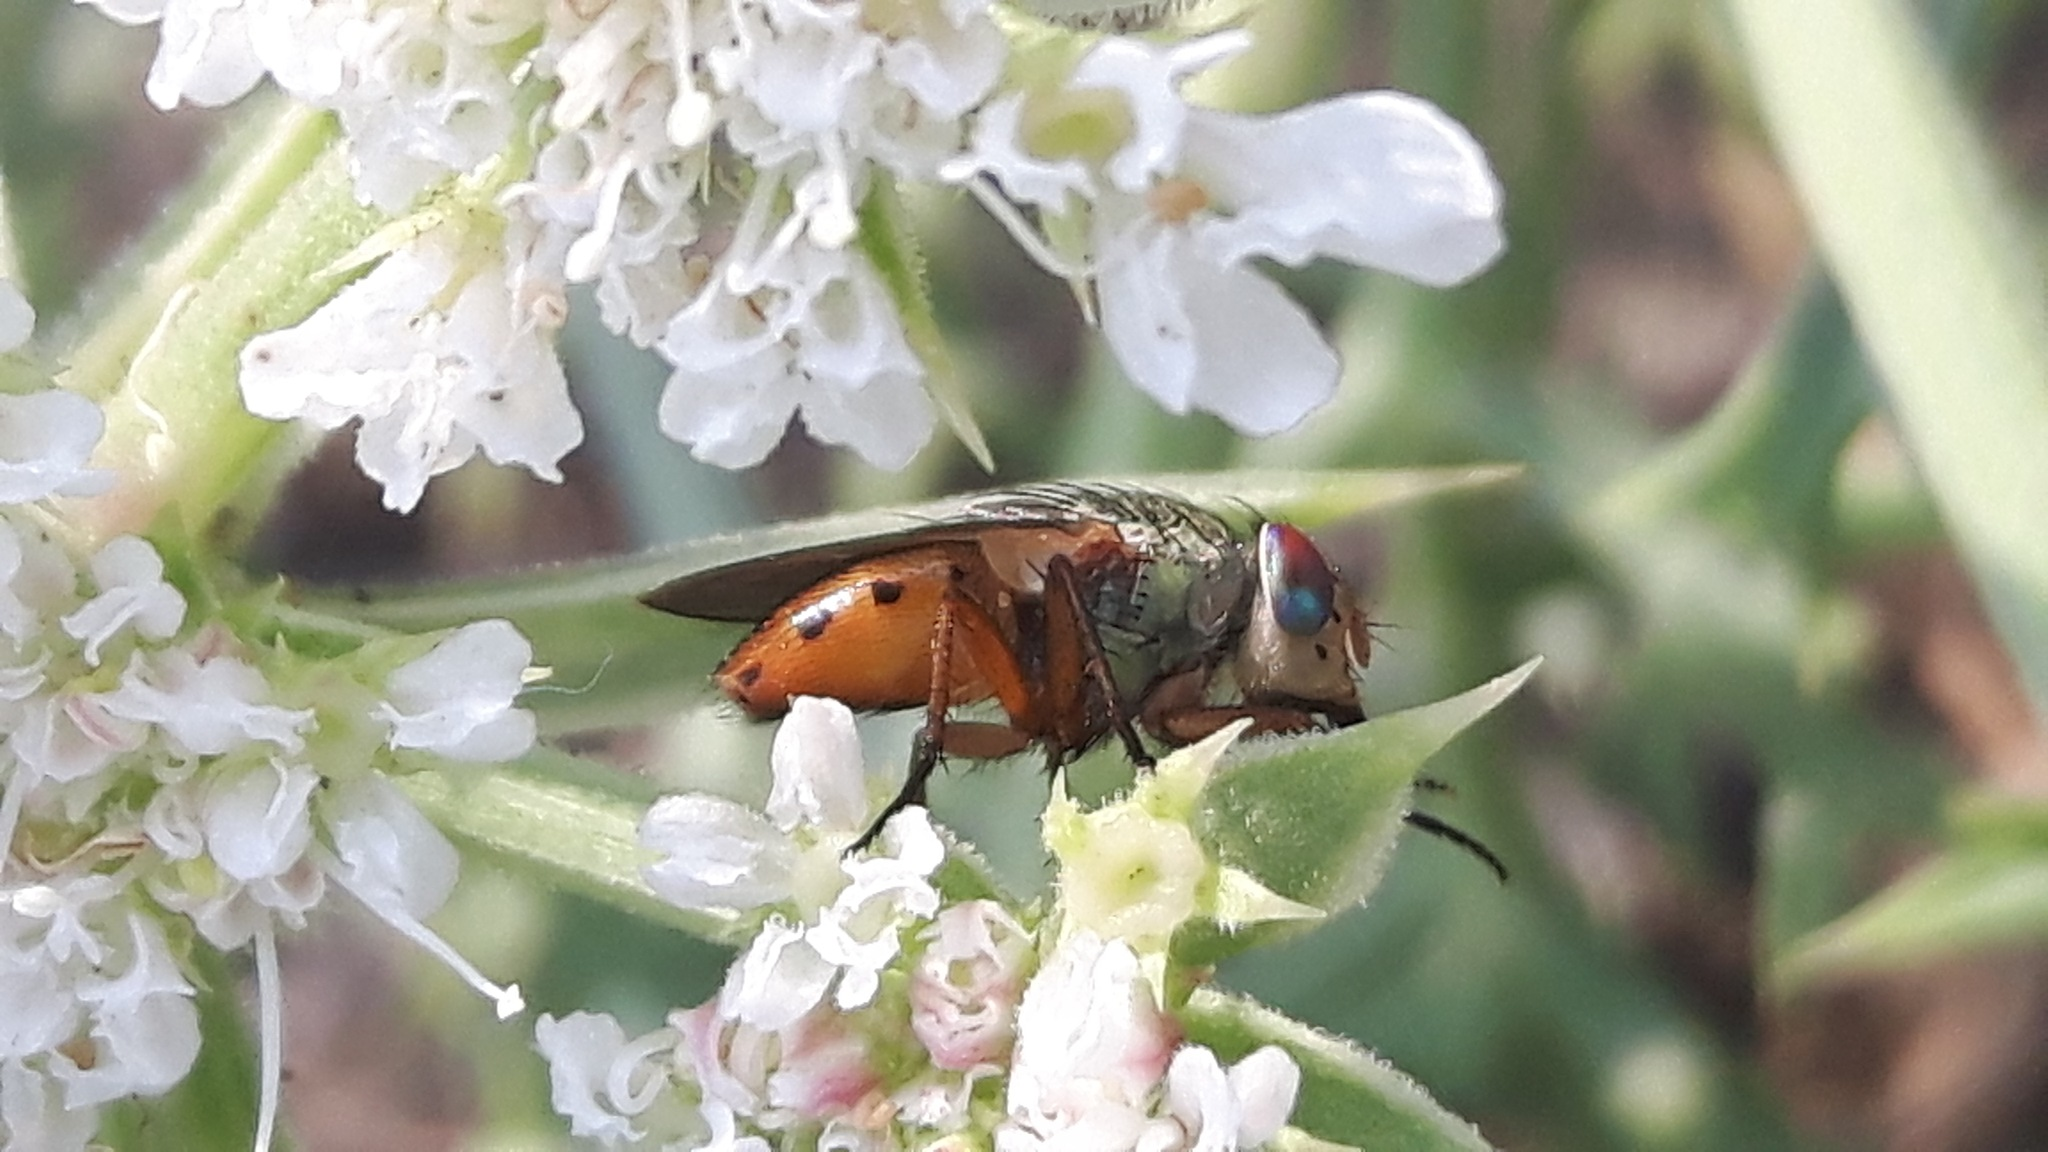 Green and orange coloured fly by Mevludin_Hasanovic